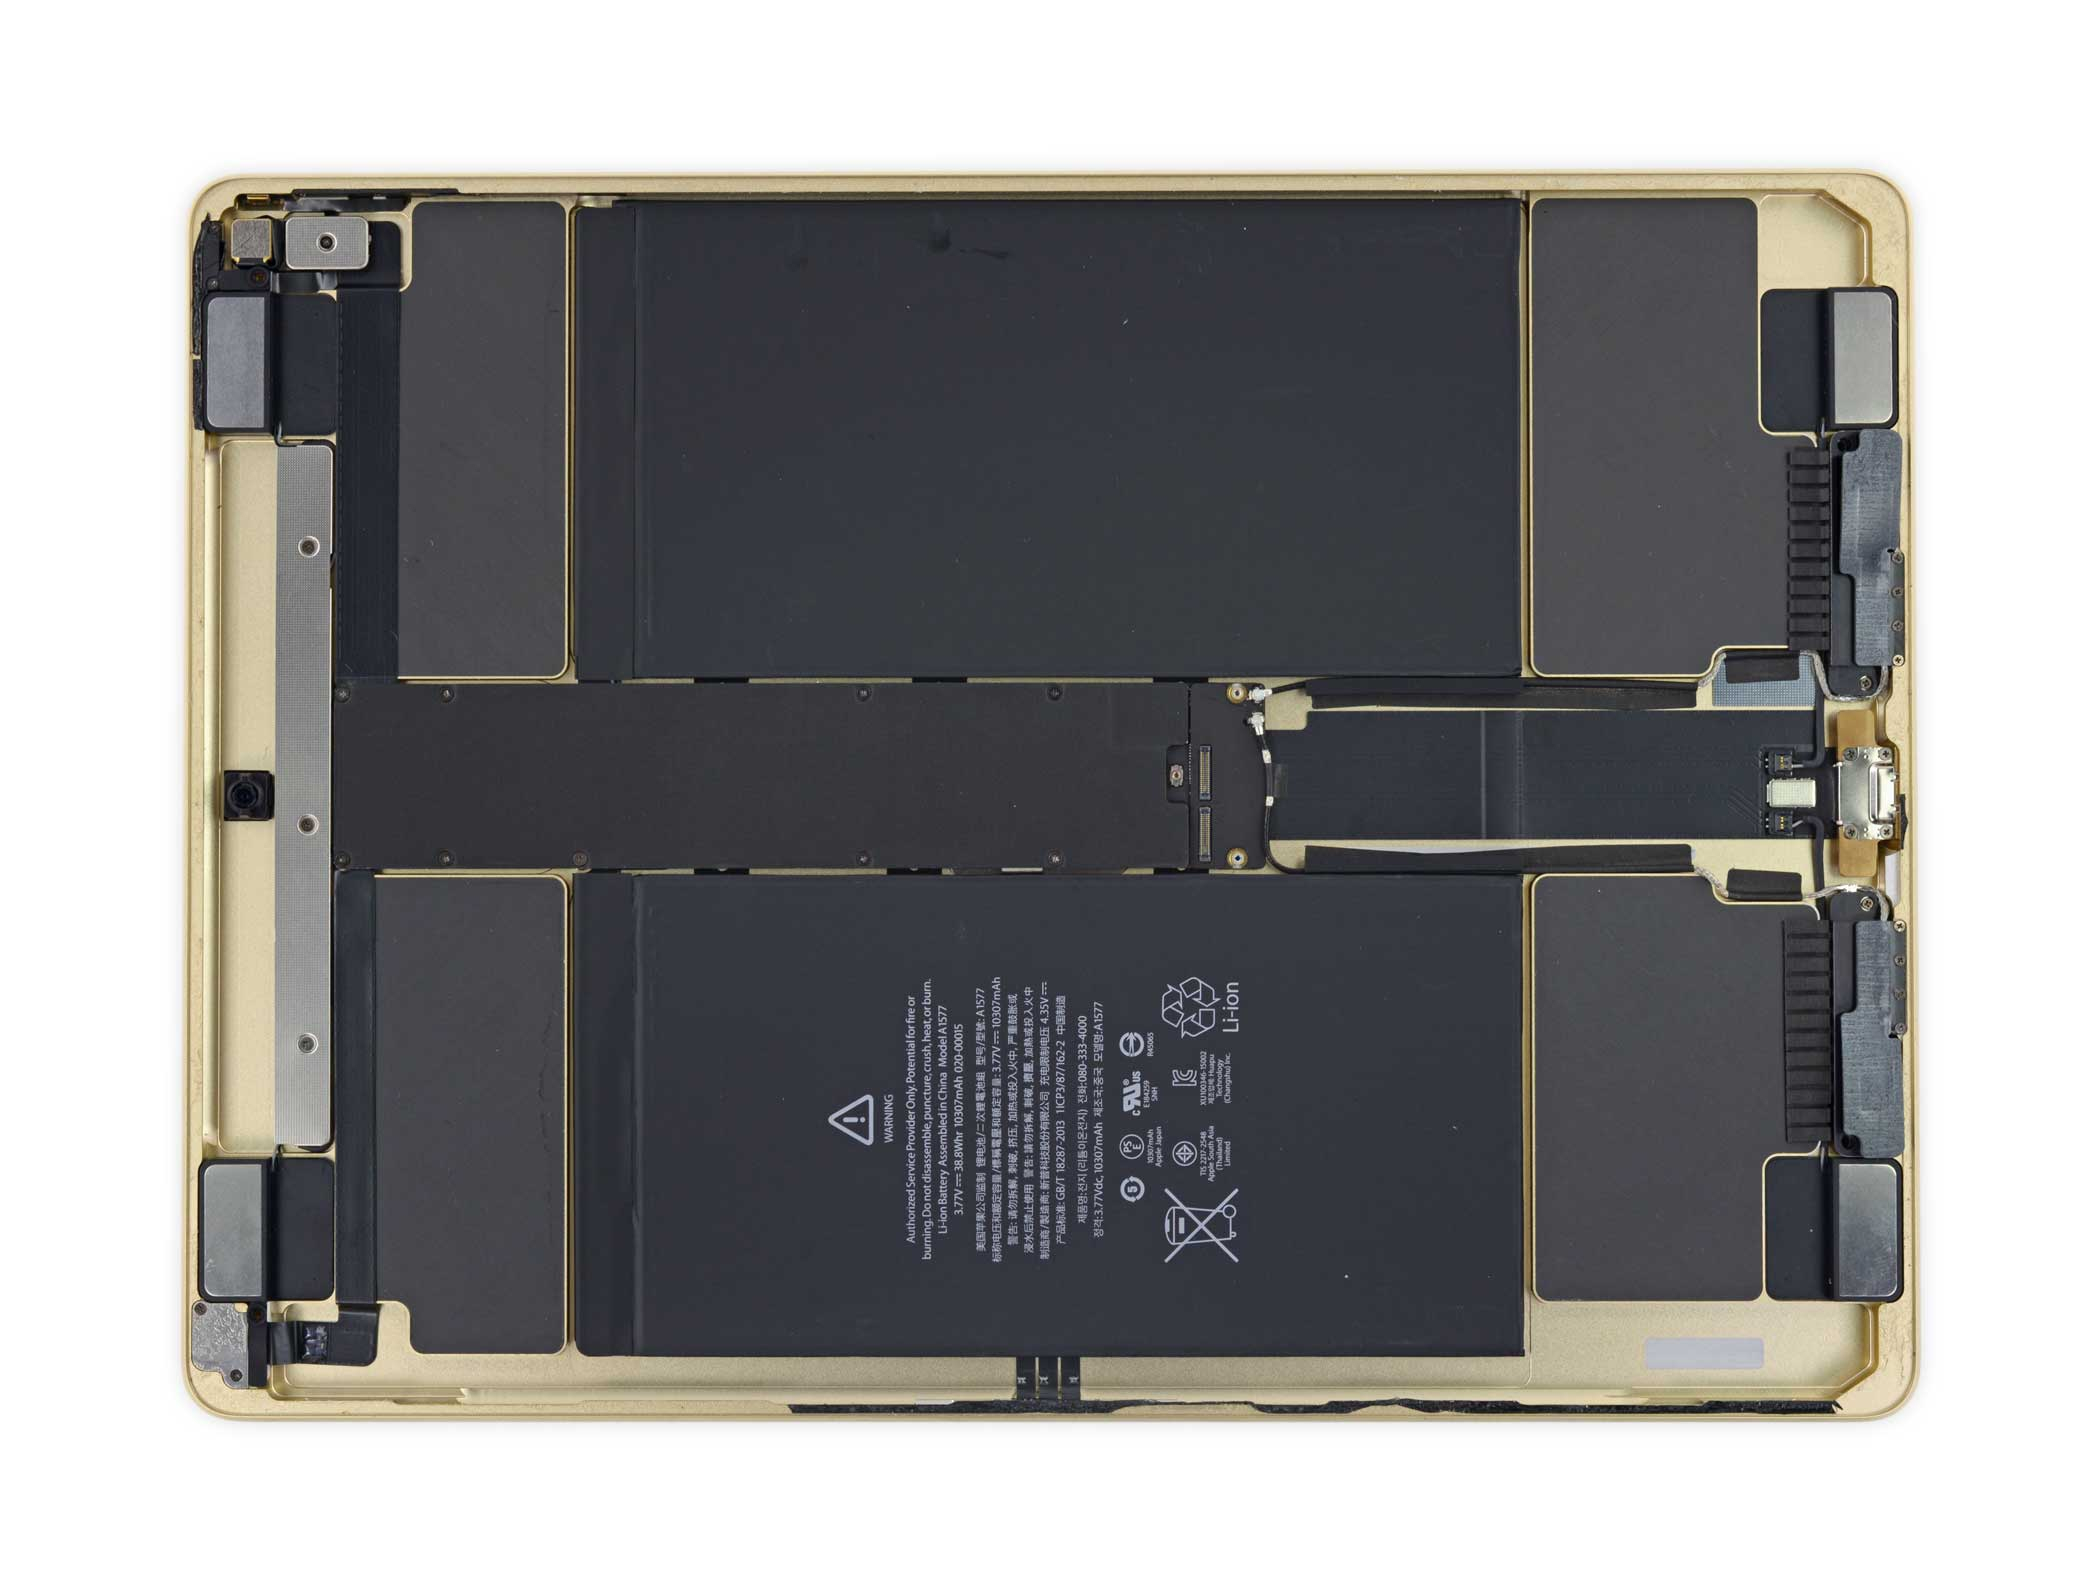 The speaker enclosures in the iPad Pro take up a significant amount of space inside the body.